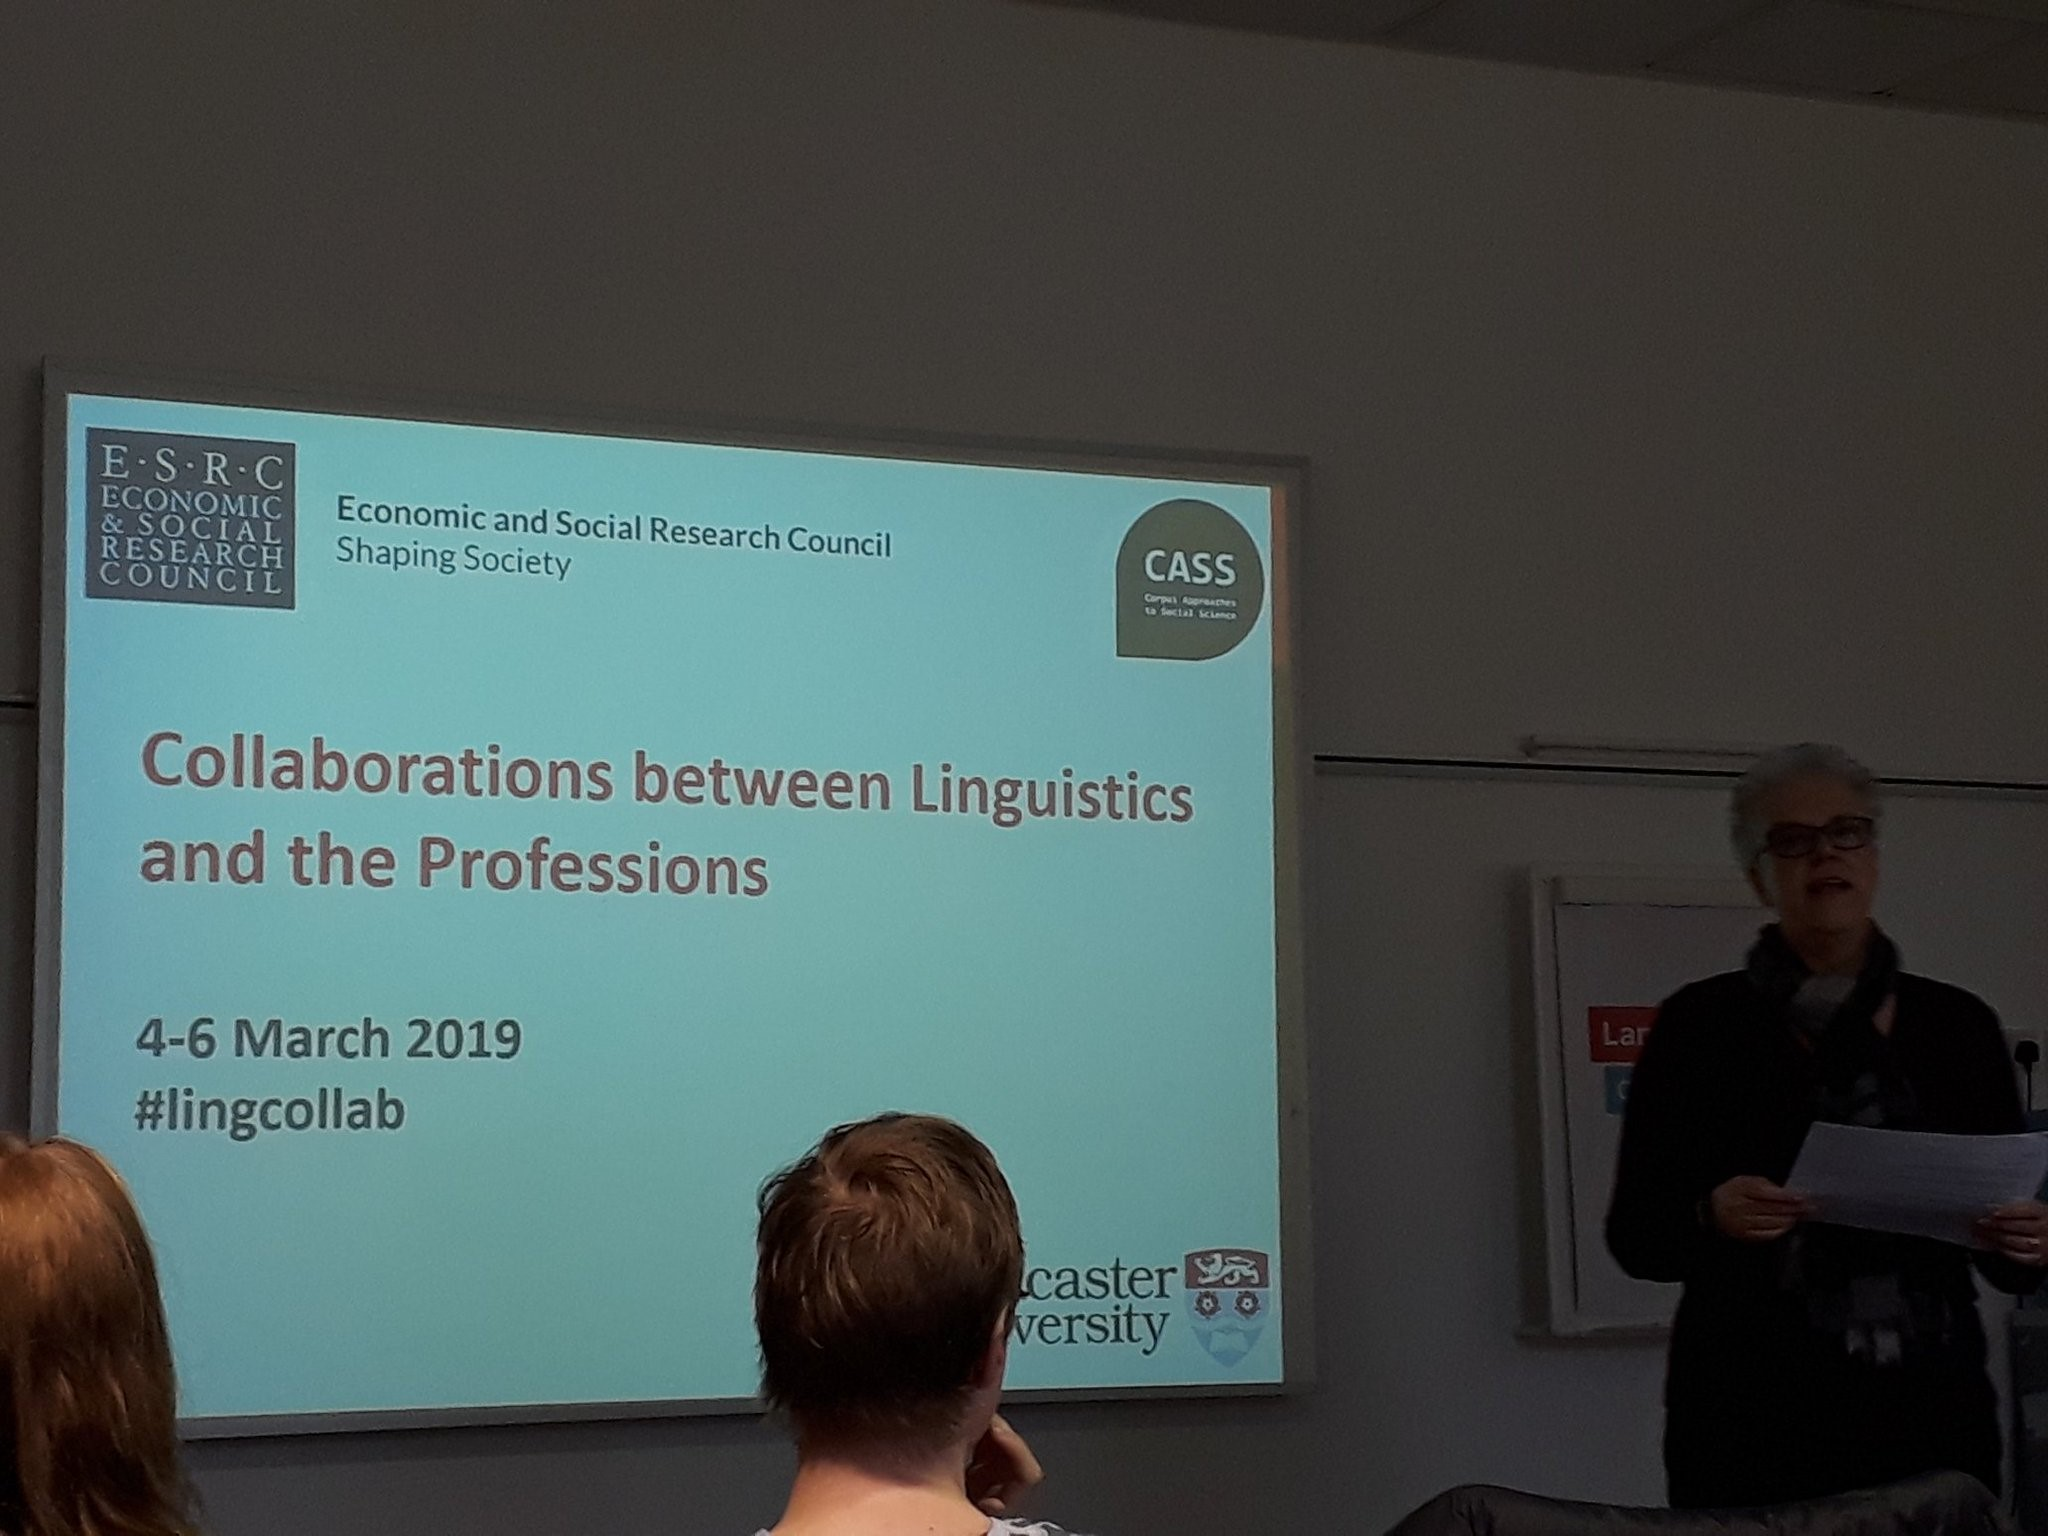 Collaborations between Linguistics and the Professions